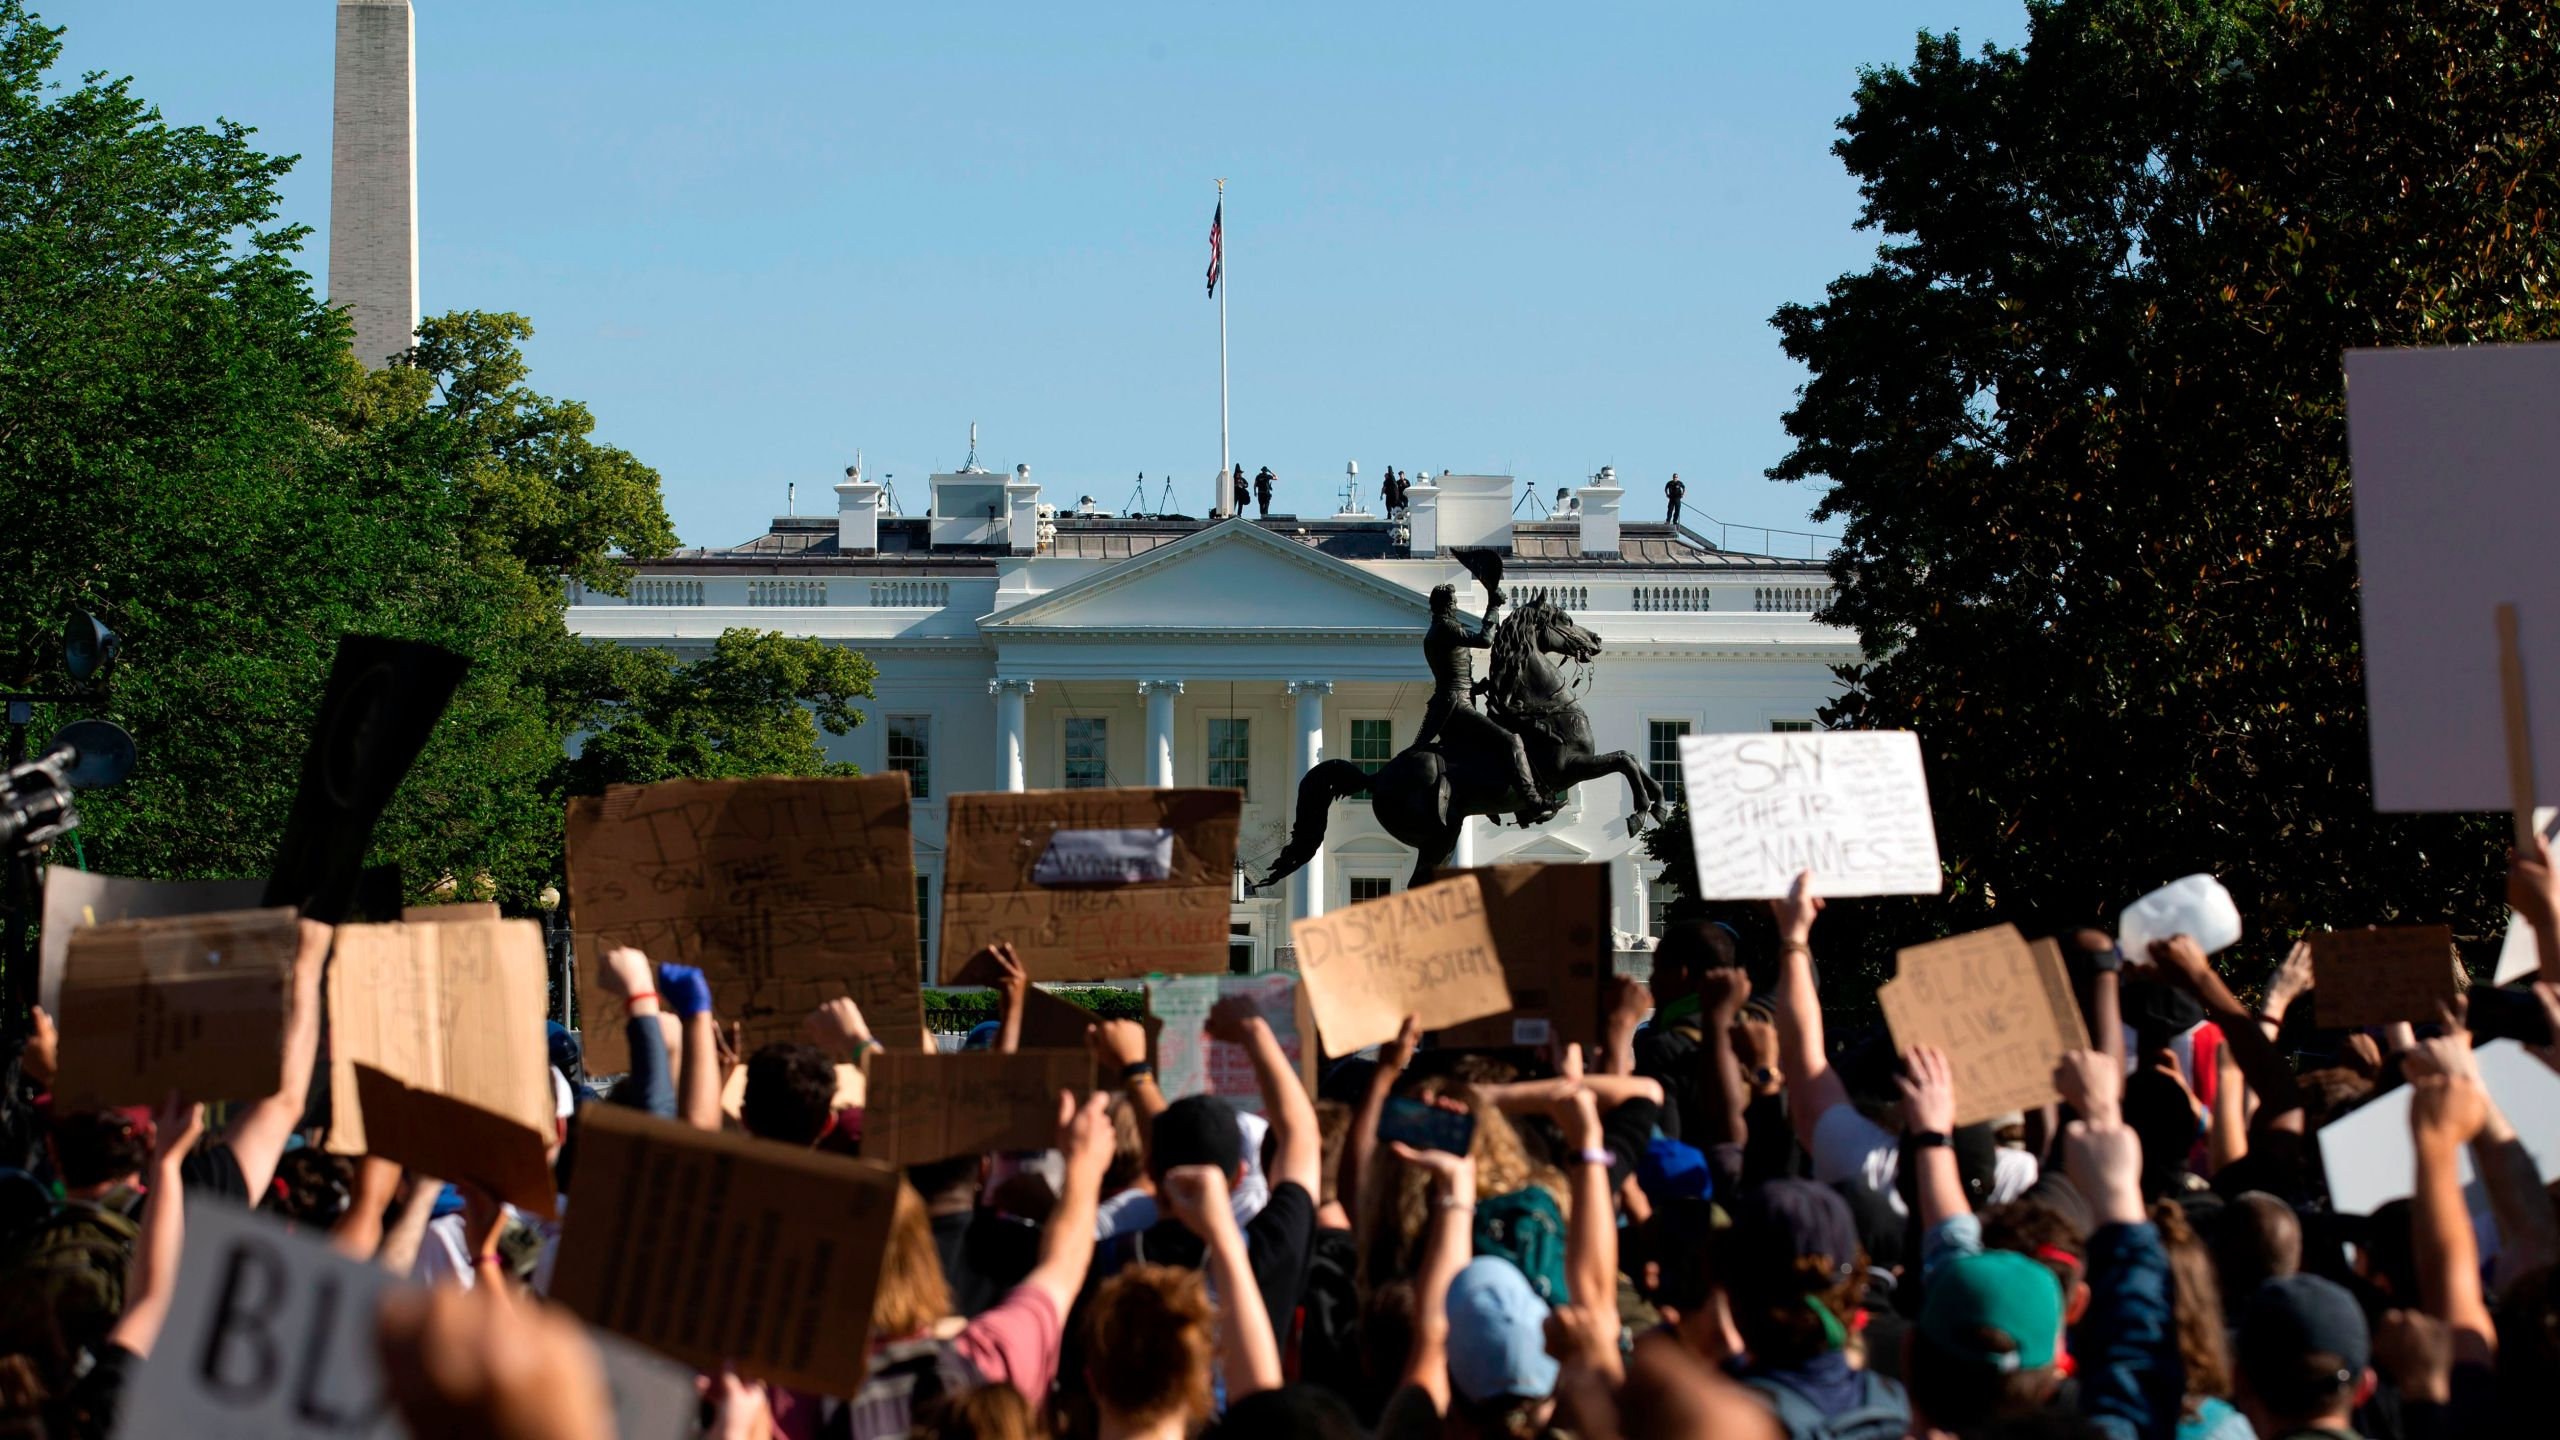 Demonstrators hold up placards protest outside of the White House, over the death of George Floyd in Washington D.C. on June 1, 2020. (Jose LUIS MAGANA/AFP via Getty Images)